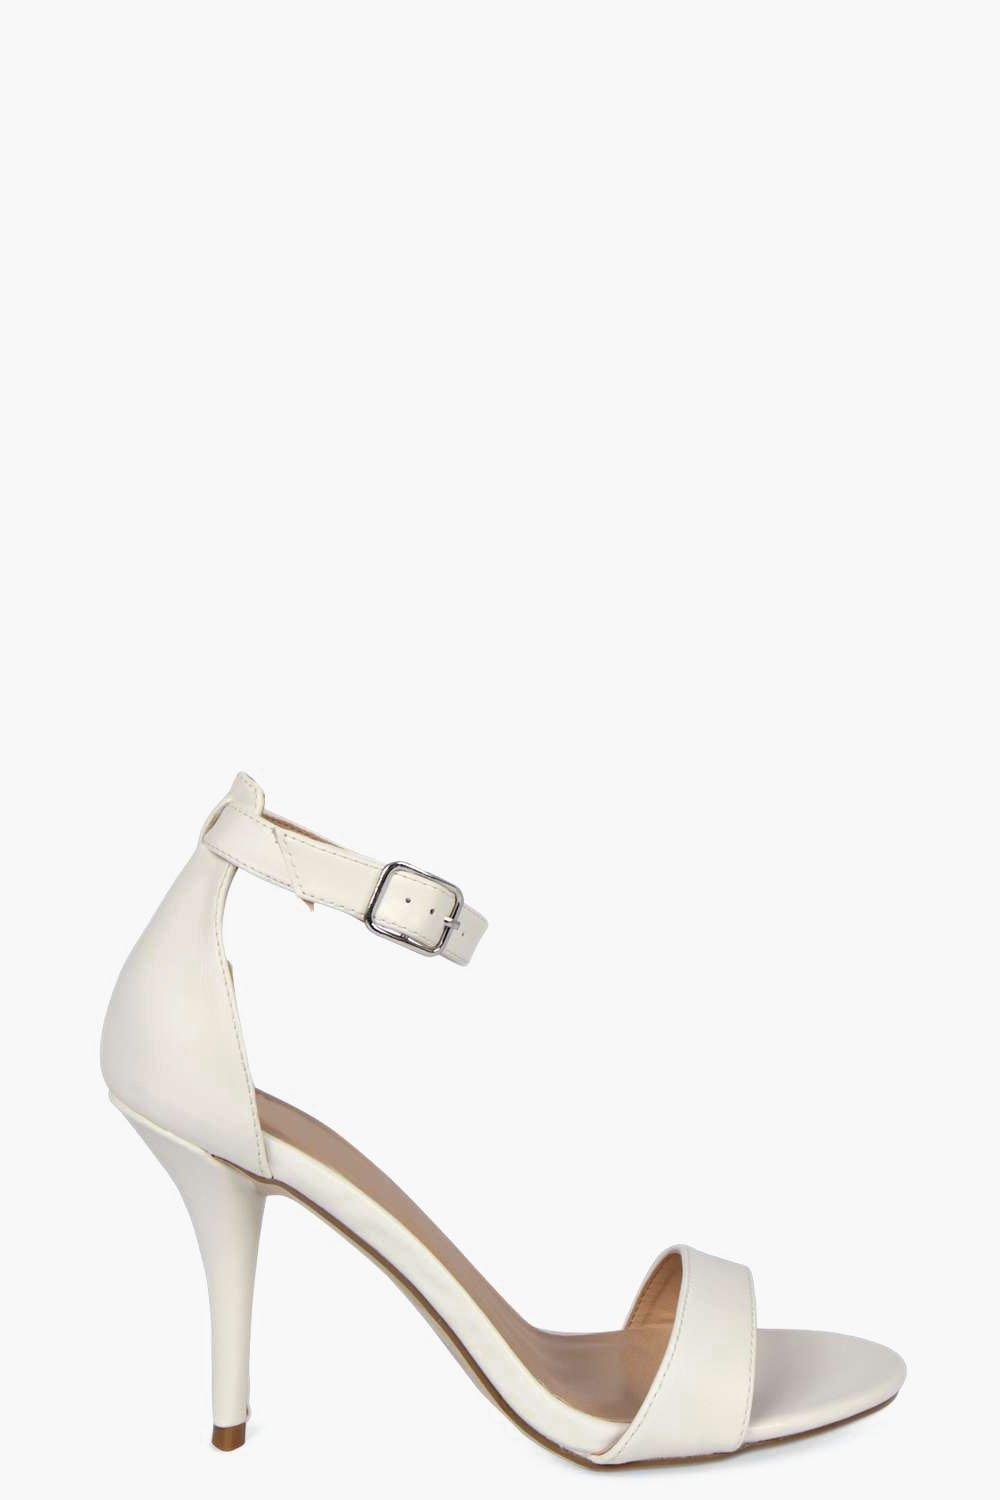 c970b1e12c5 Boohoo Wide Fit Ankle Strap Skinny Mid Heel Two Parts in White ...